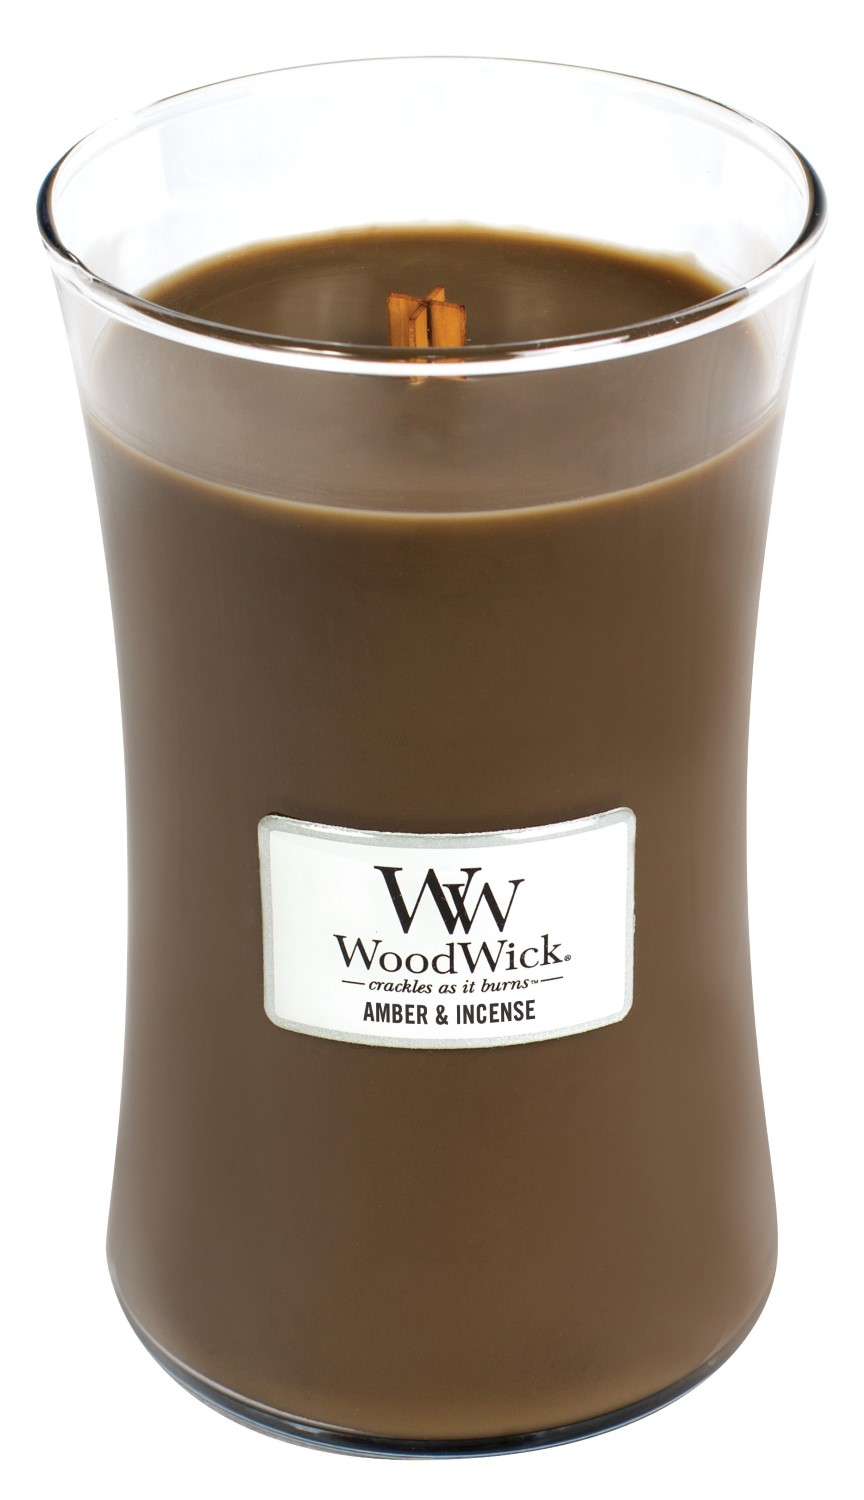 WoodWick brown fragrant candle Amber & Incense large vase